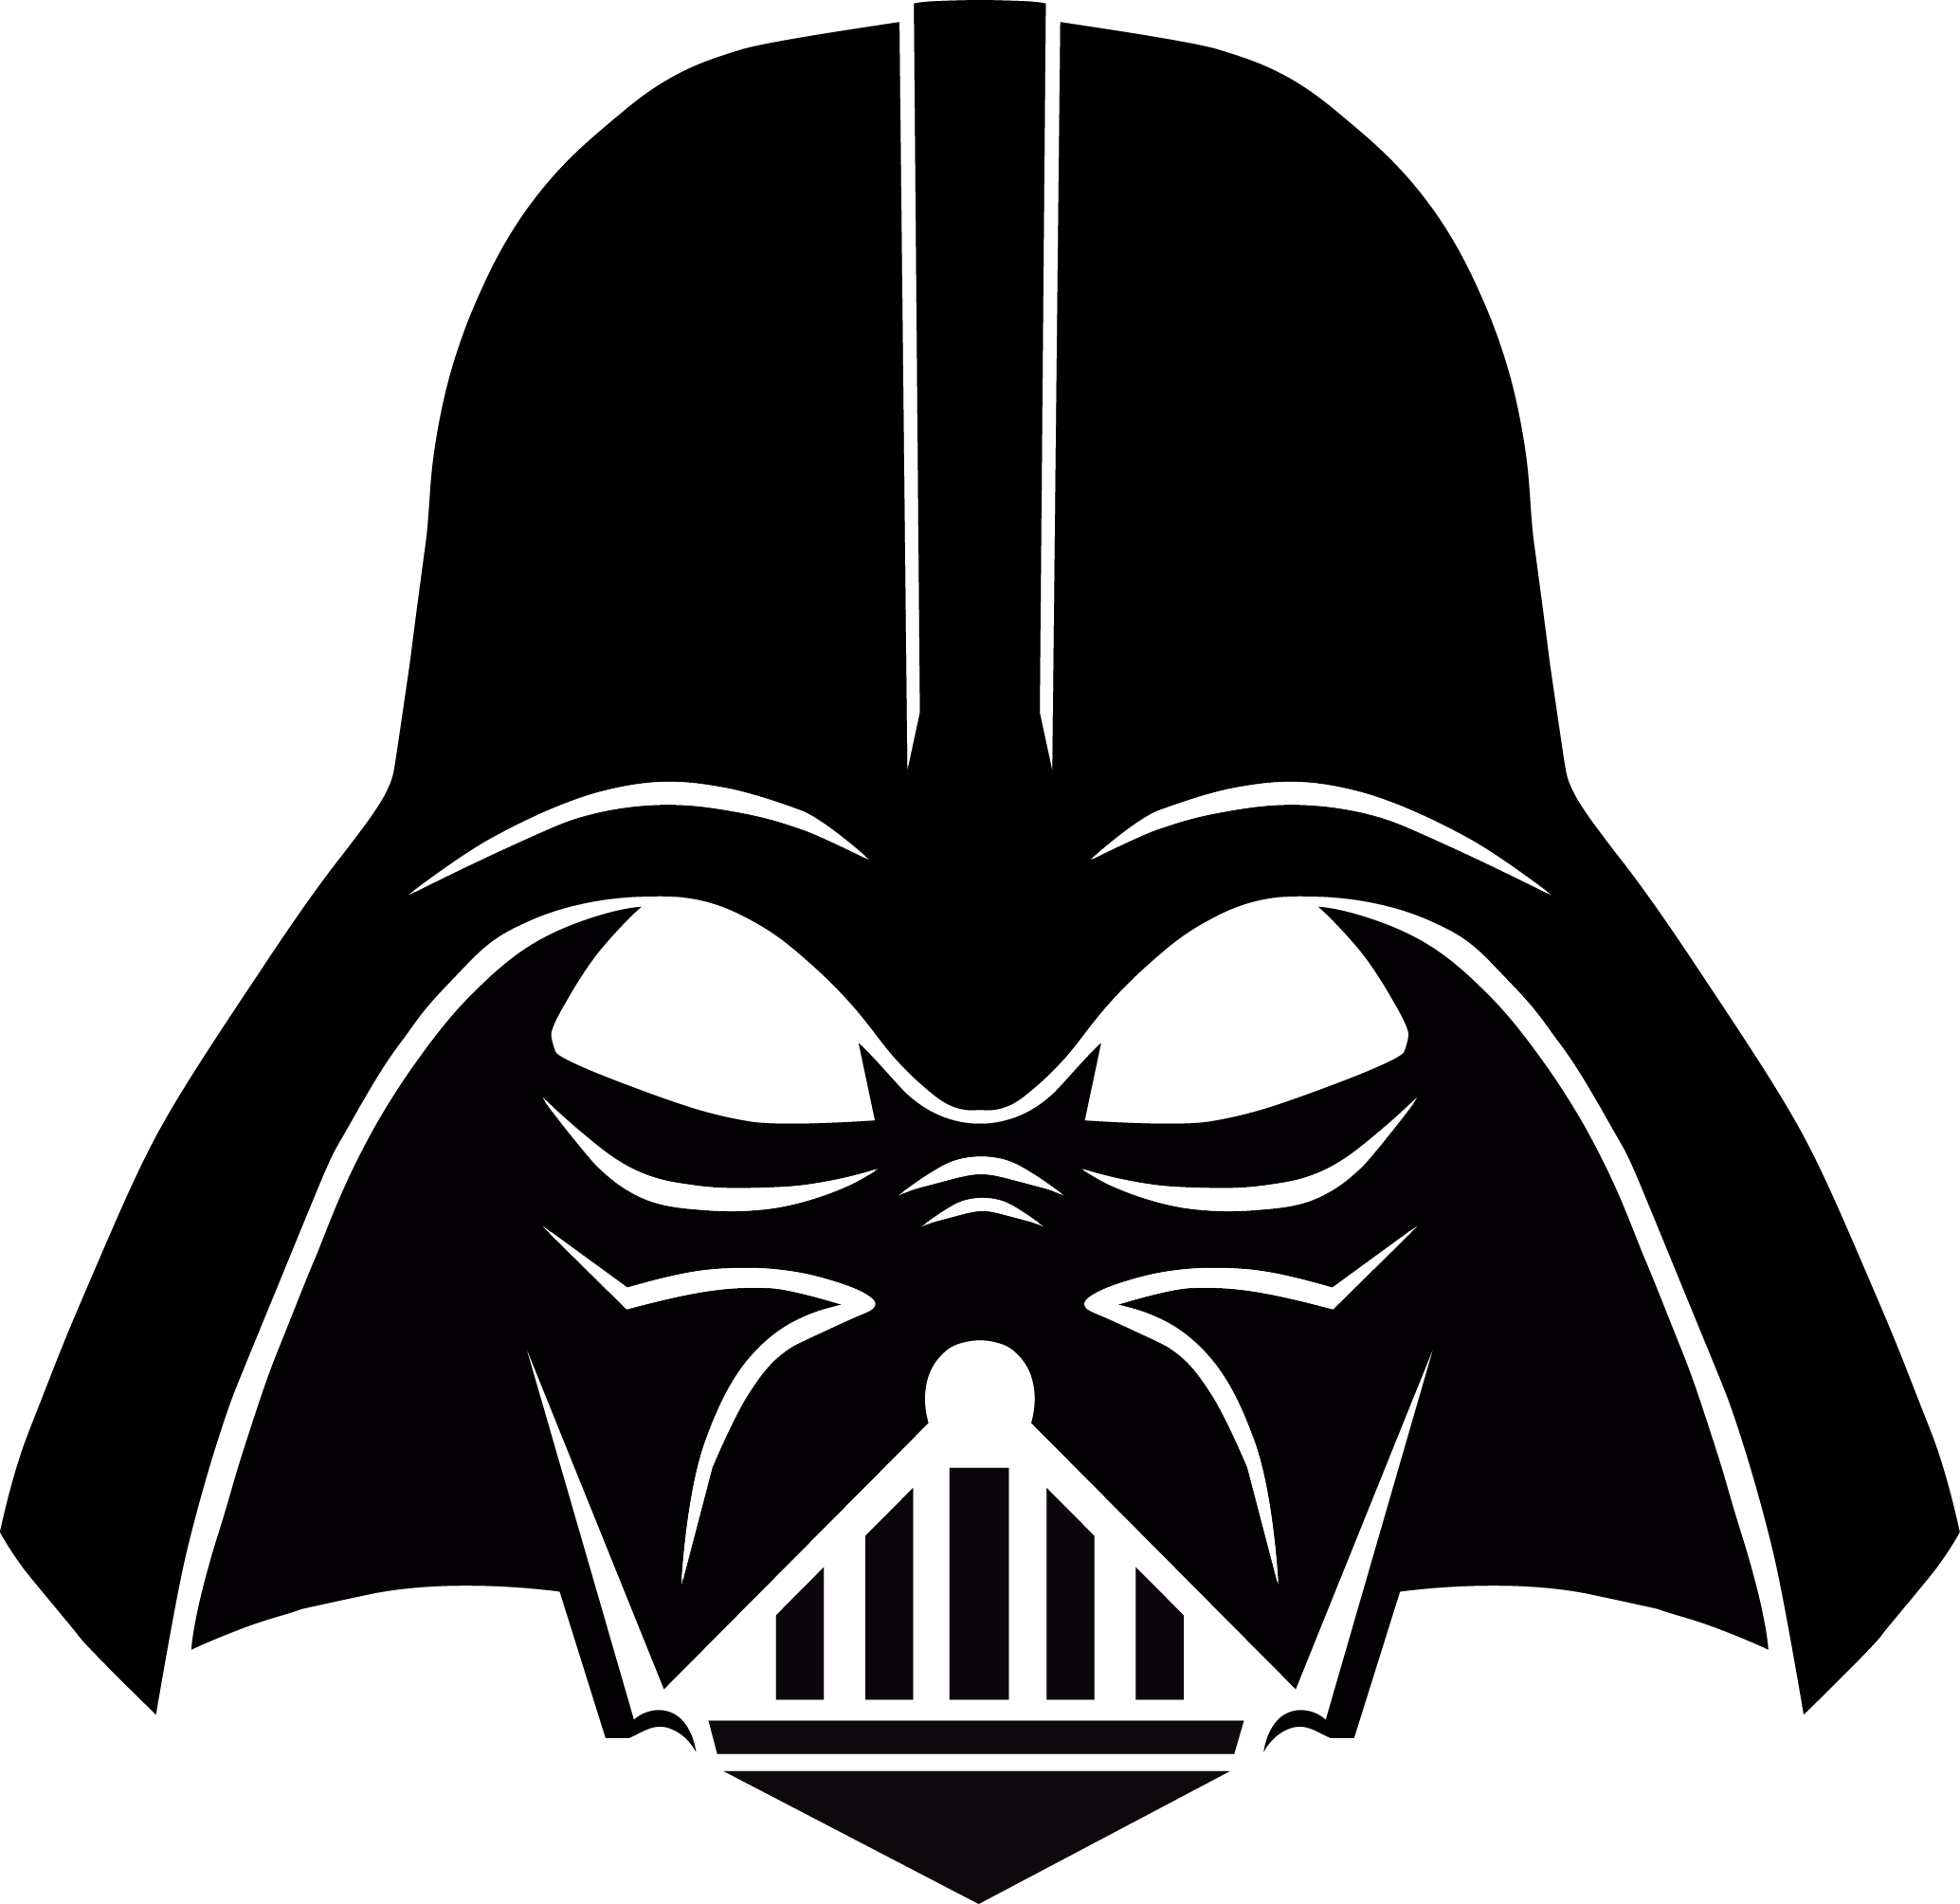 darth vader clipart outline cliparts download #18586